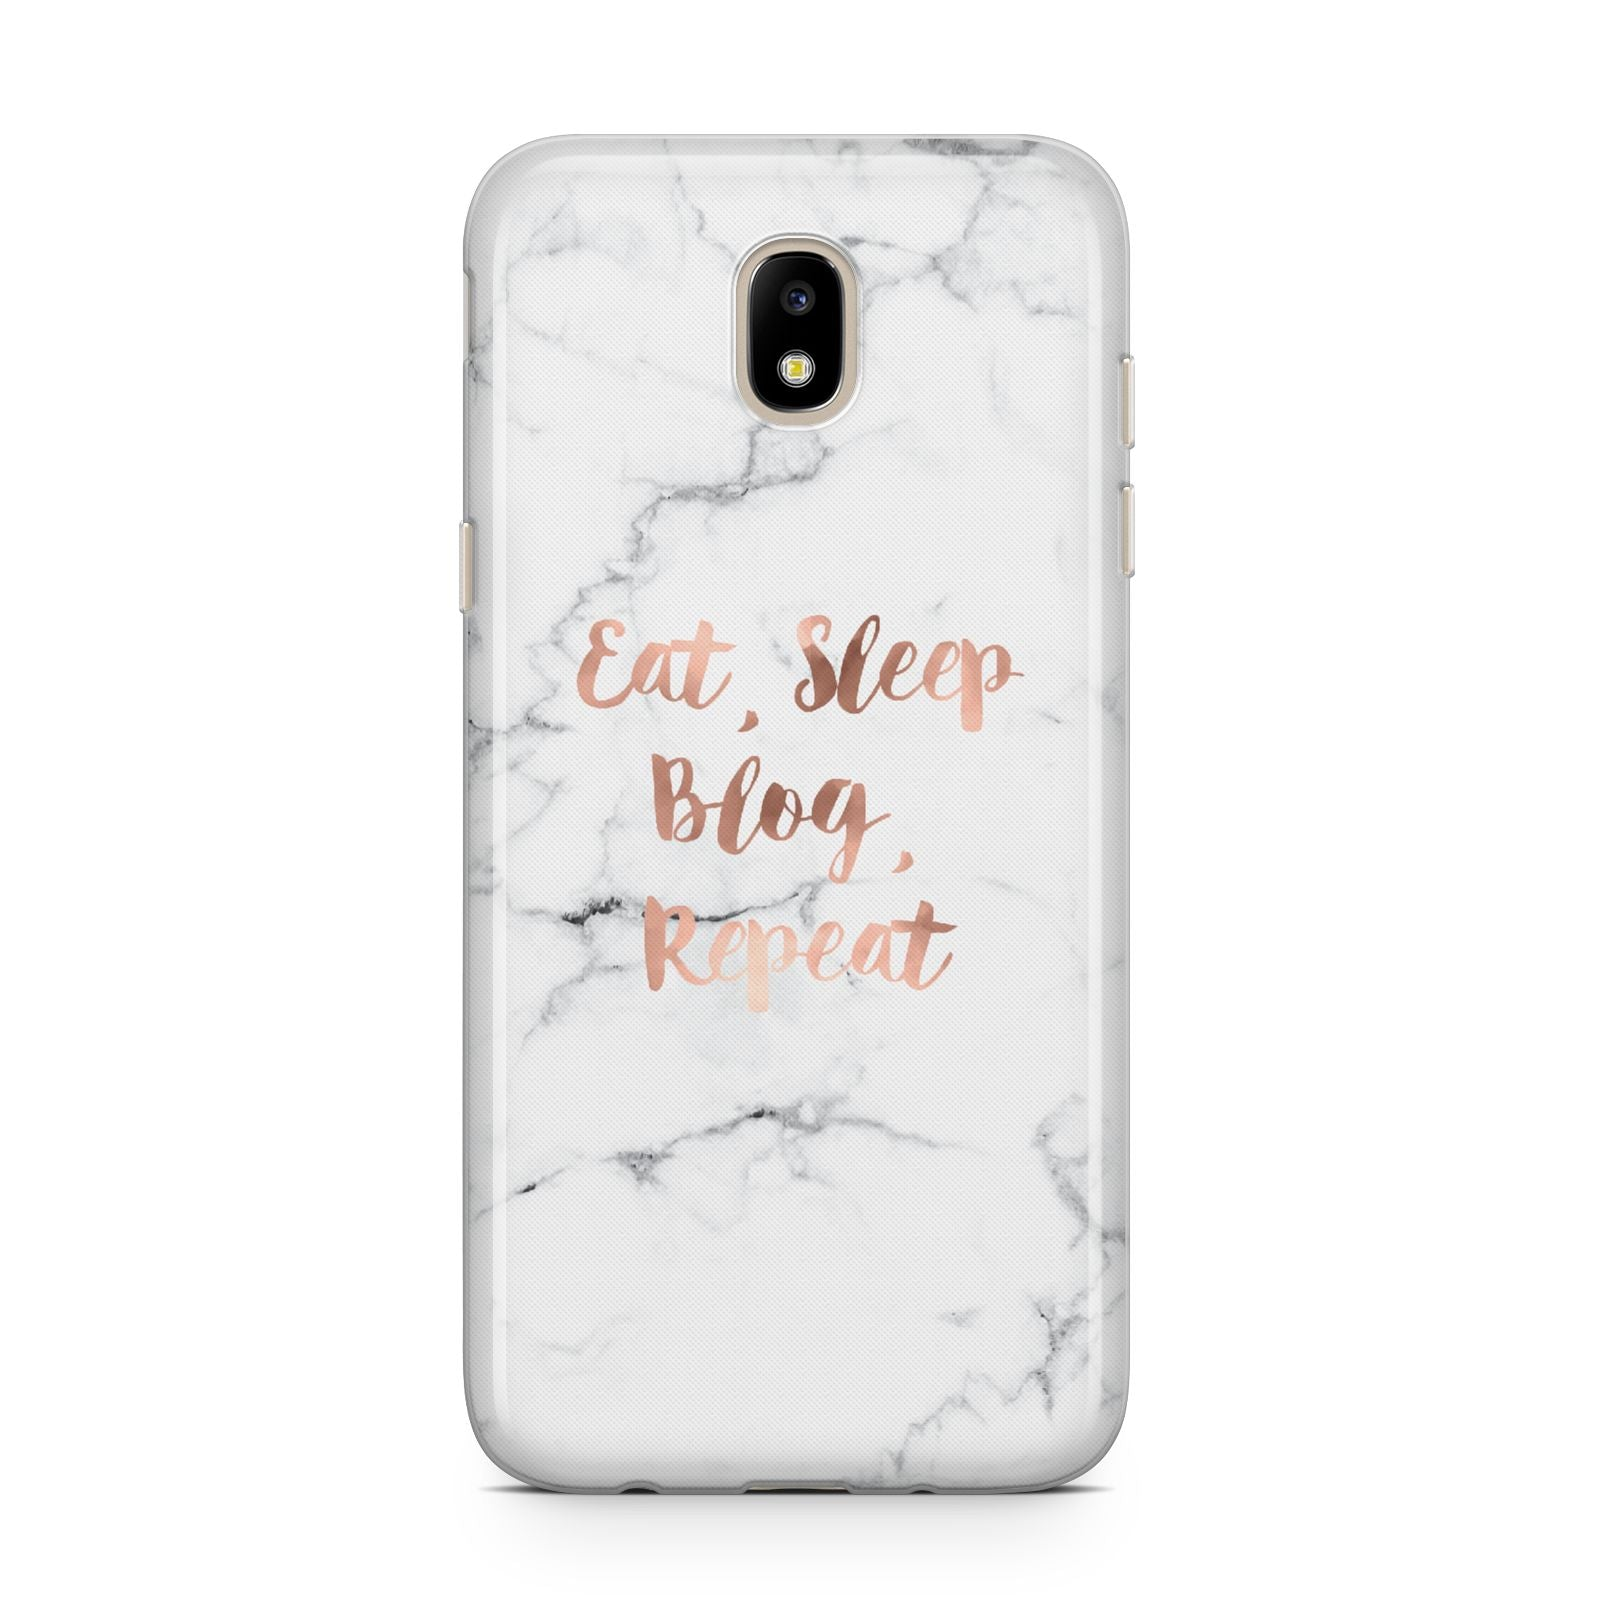 Eat Sleep Blog Repeat Marble Effect Samsung J5 2017 Case